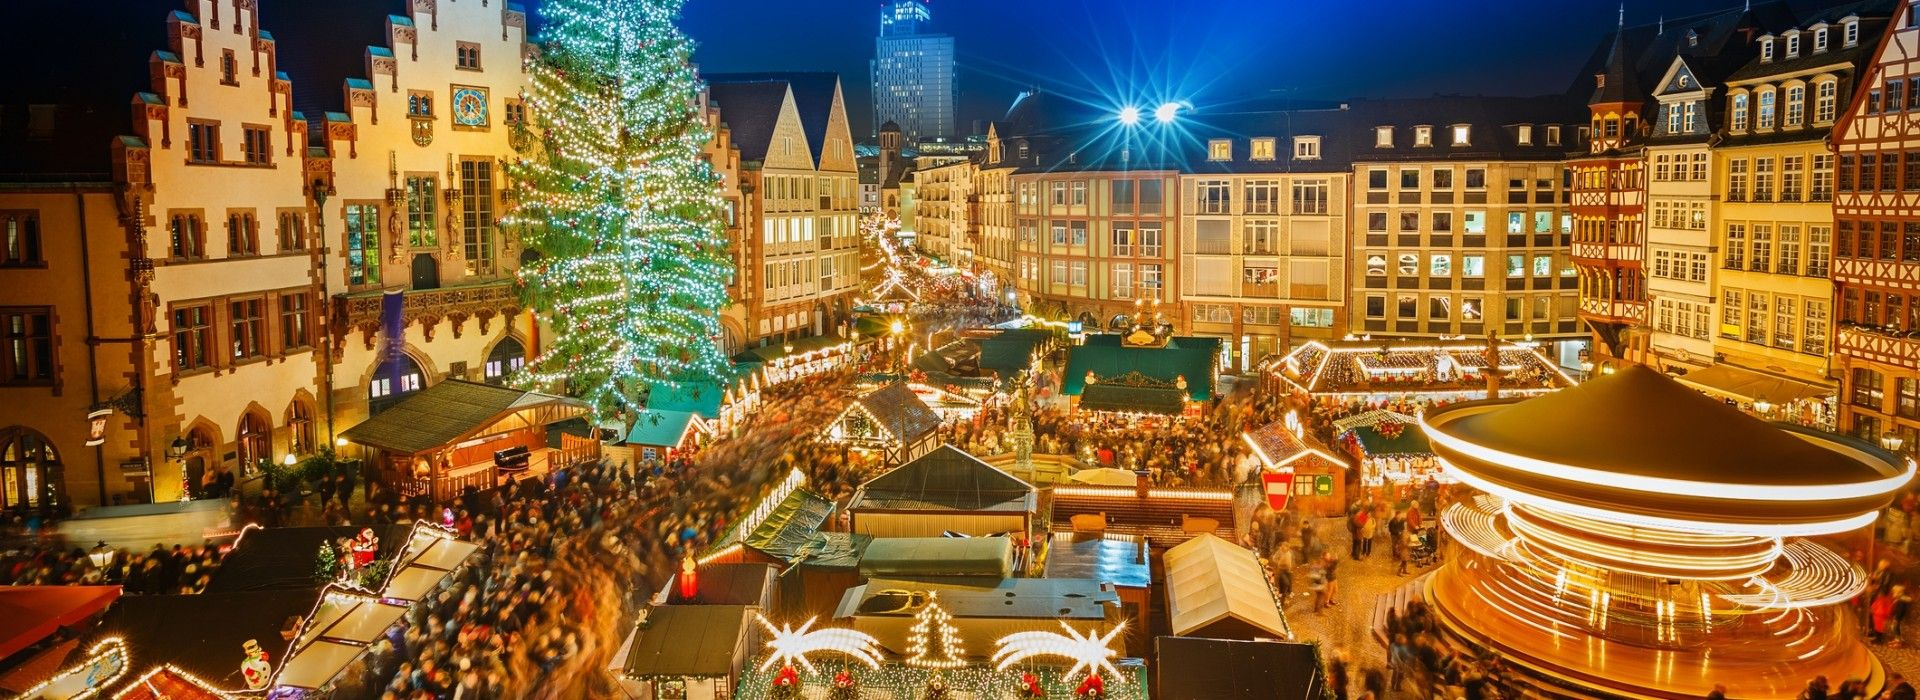 Spending the holiday season on a Christmas Markets tour around Europe is a great way to explore the place